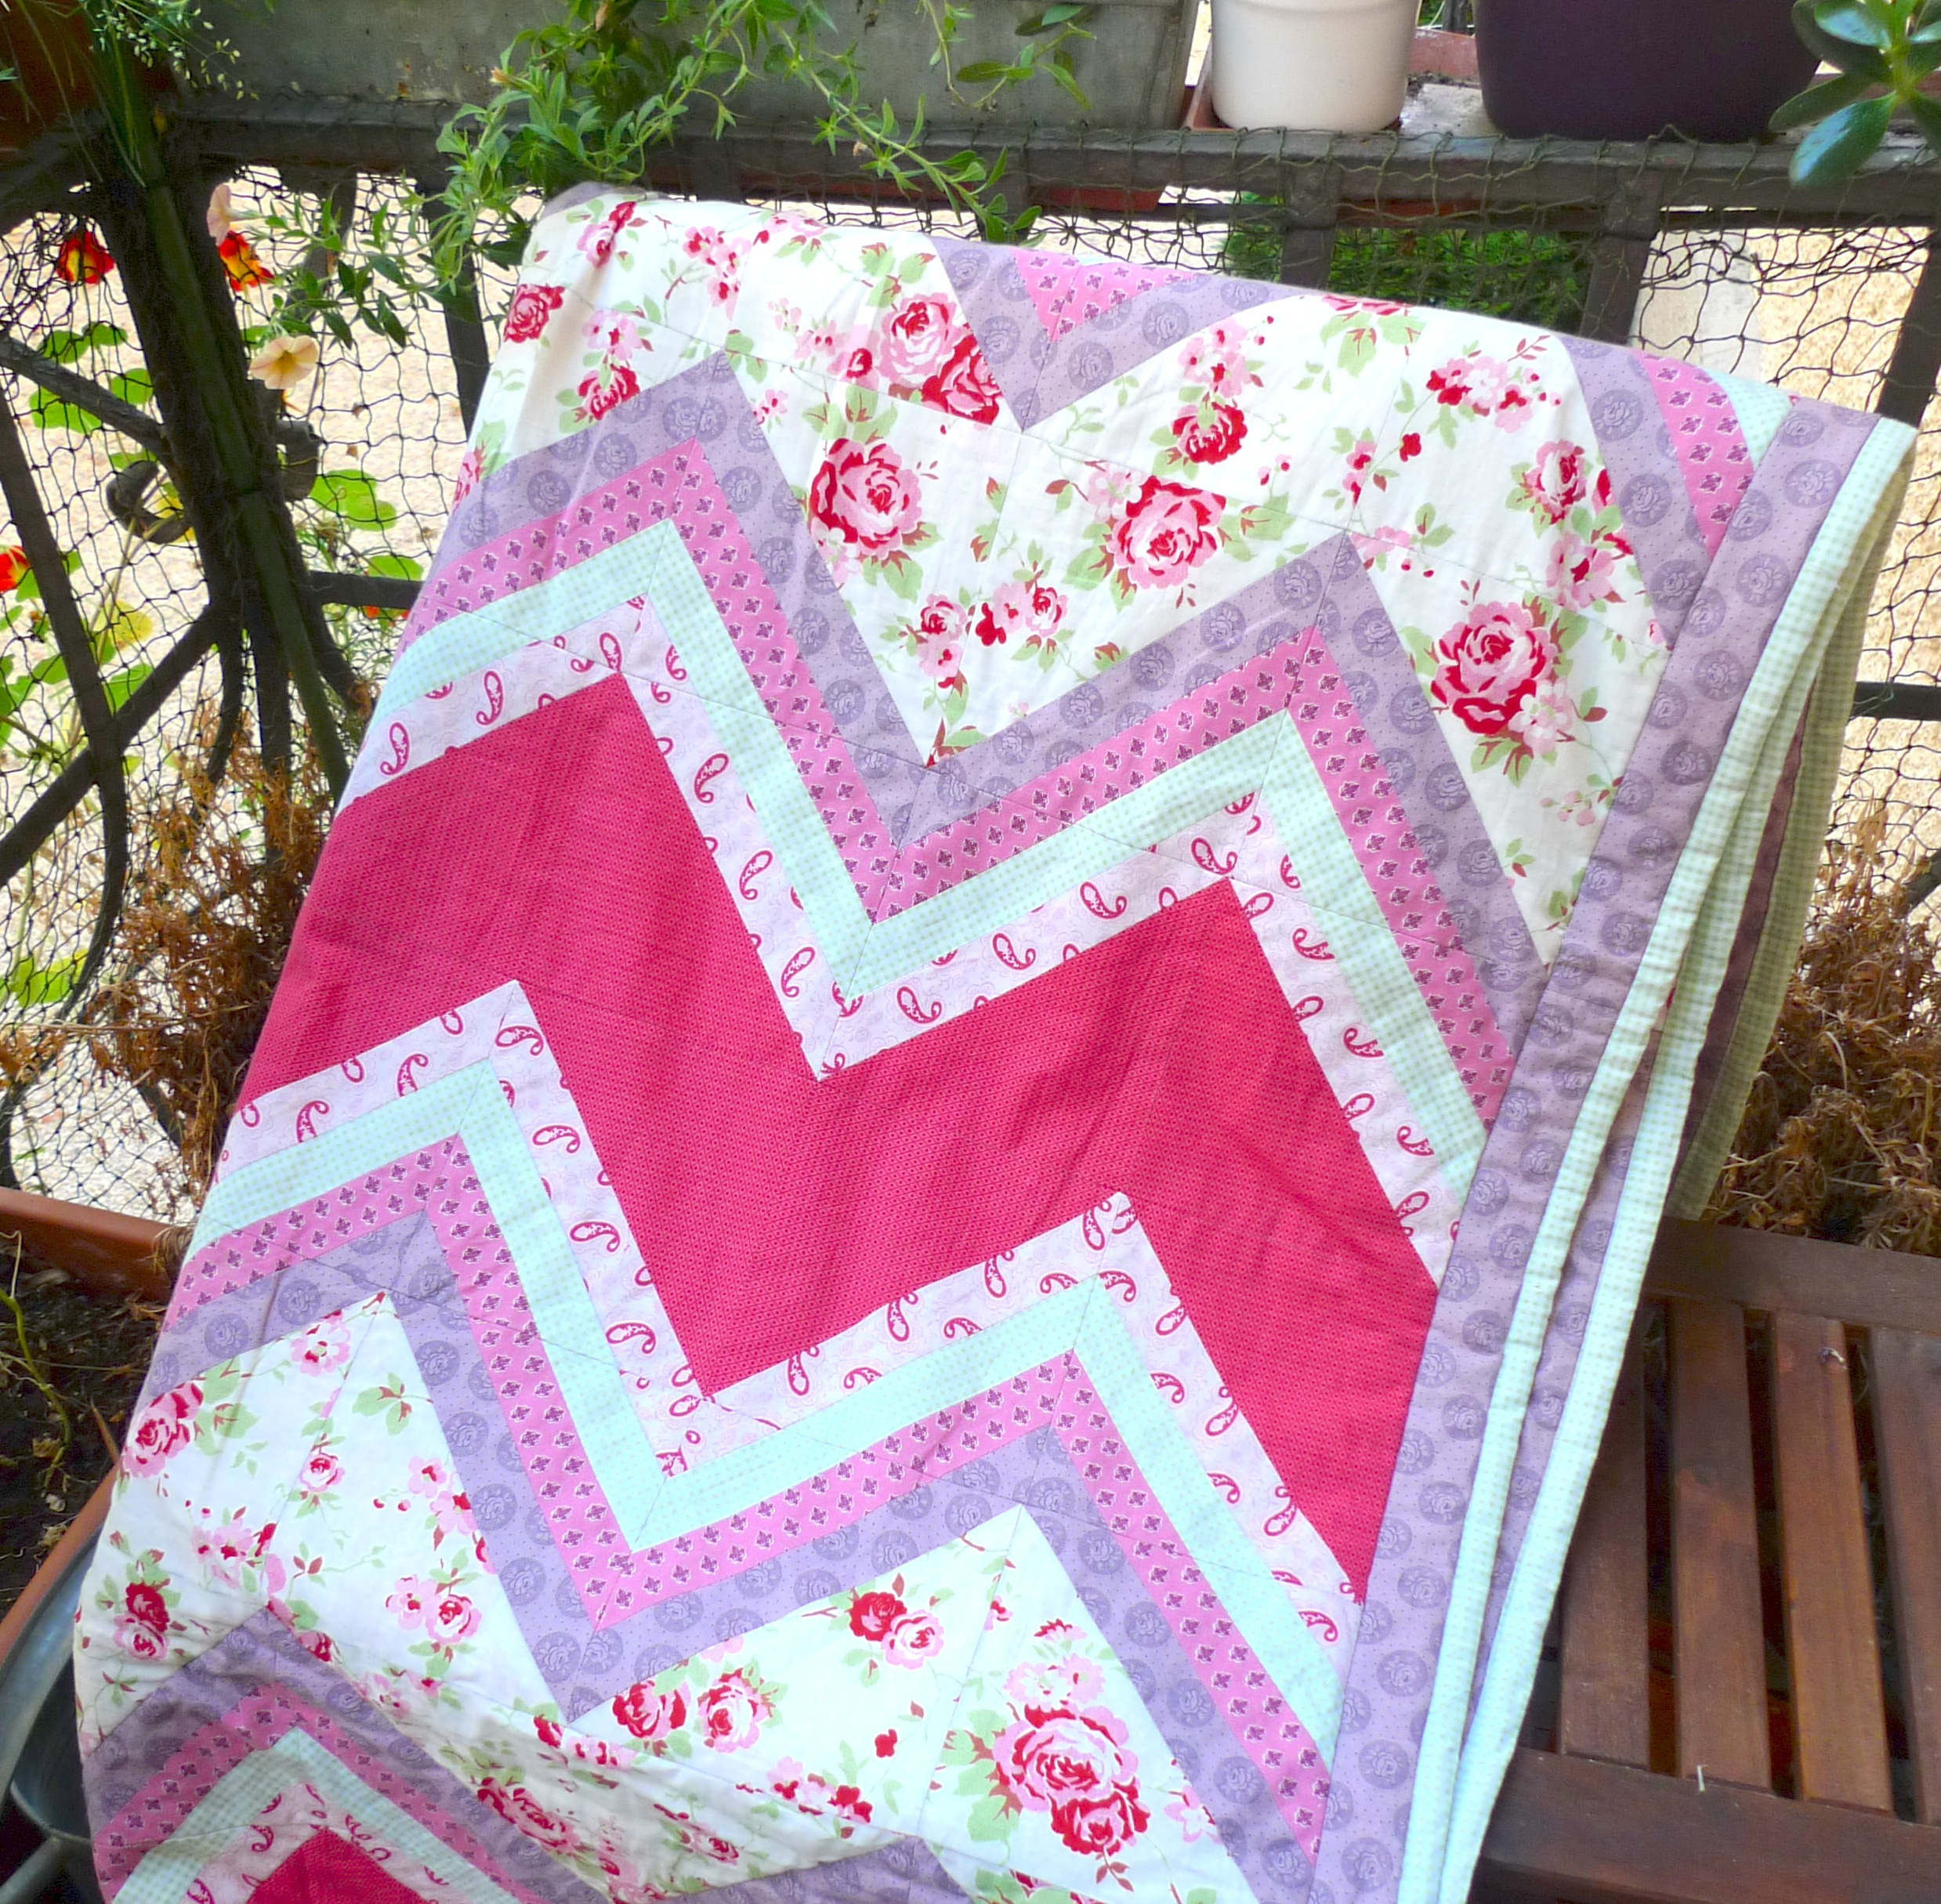 The Country Garden Quilt, taken on our balcony (Sept 2013)